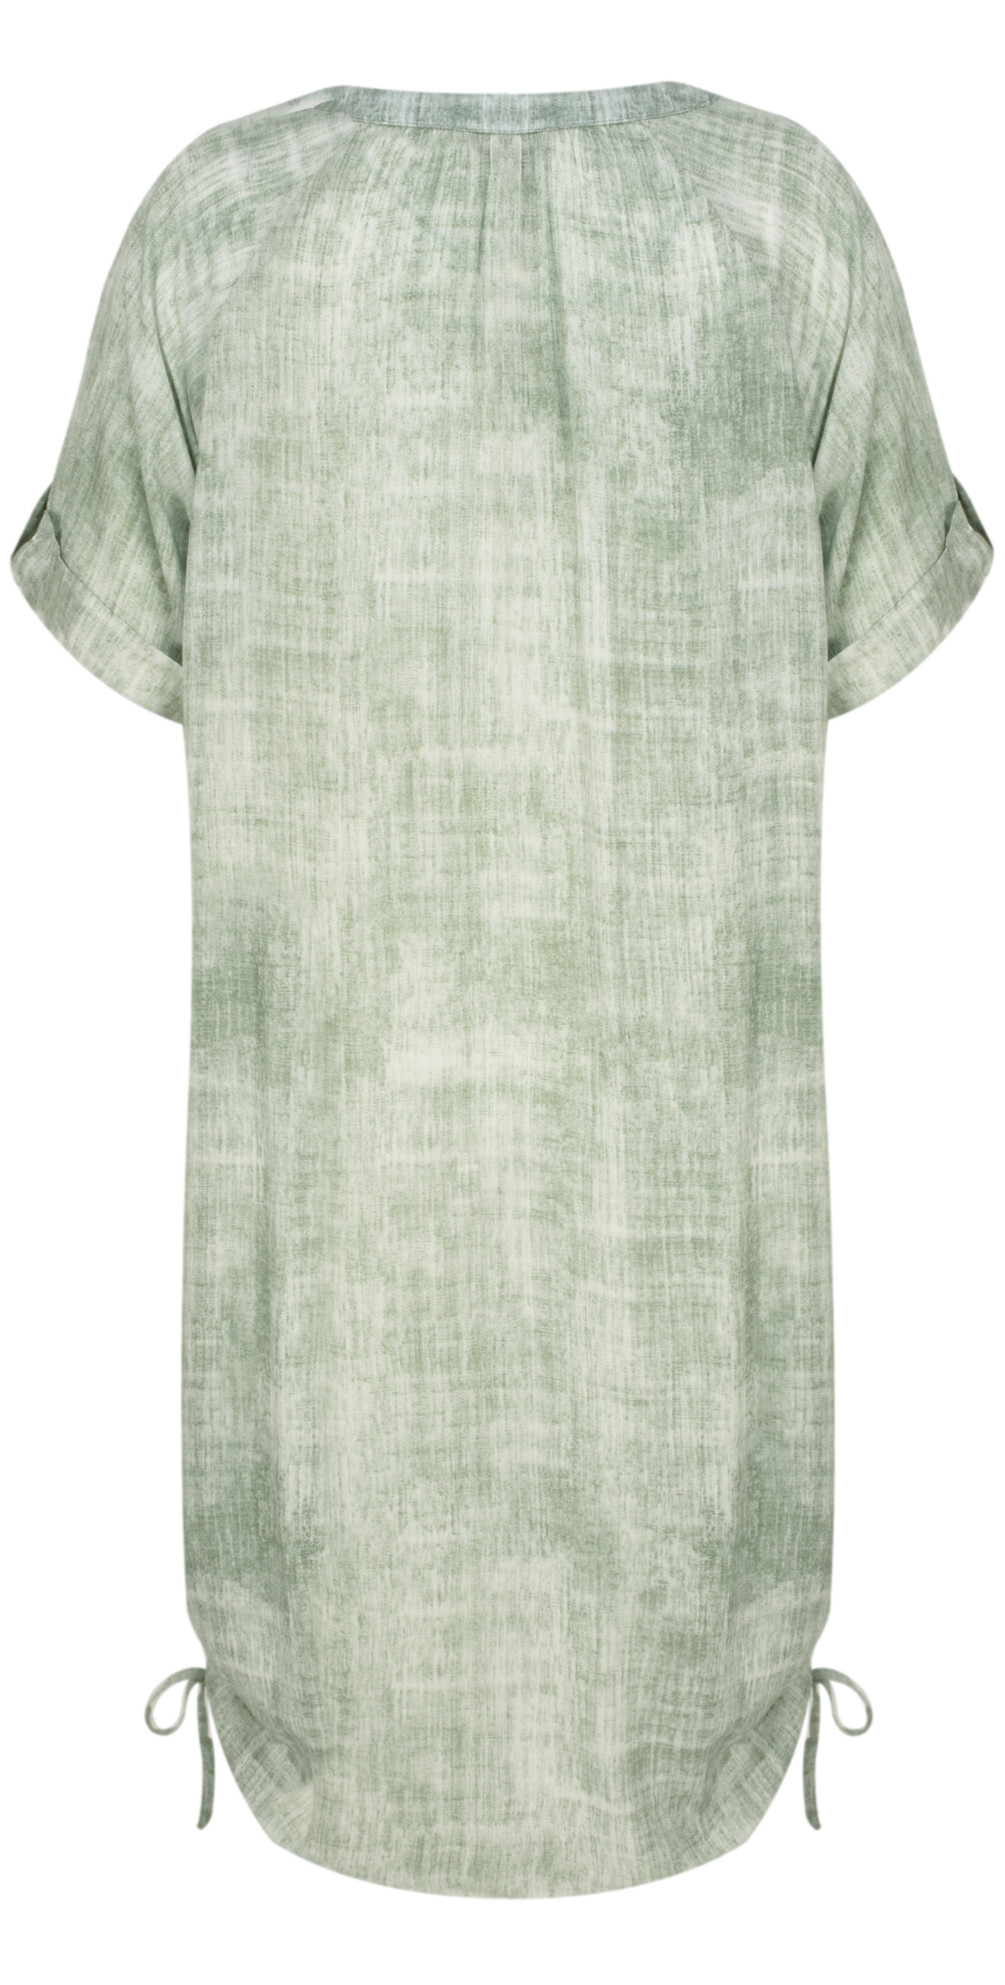 e06f98bef50 Sandwich Clothing Washed out Tunic Blouse in Hedge Green